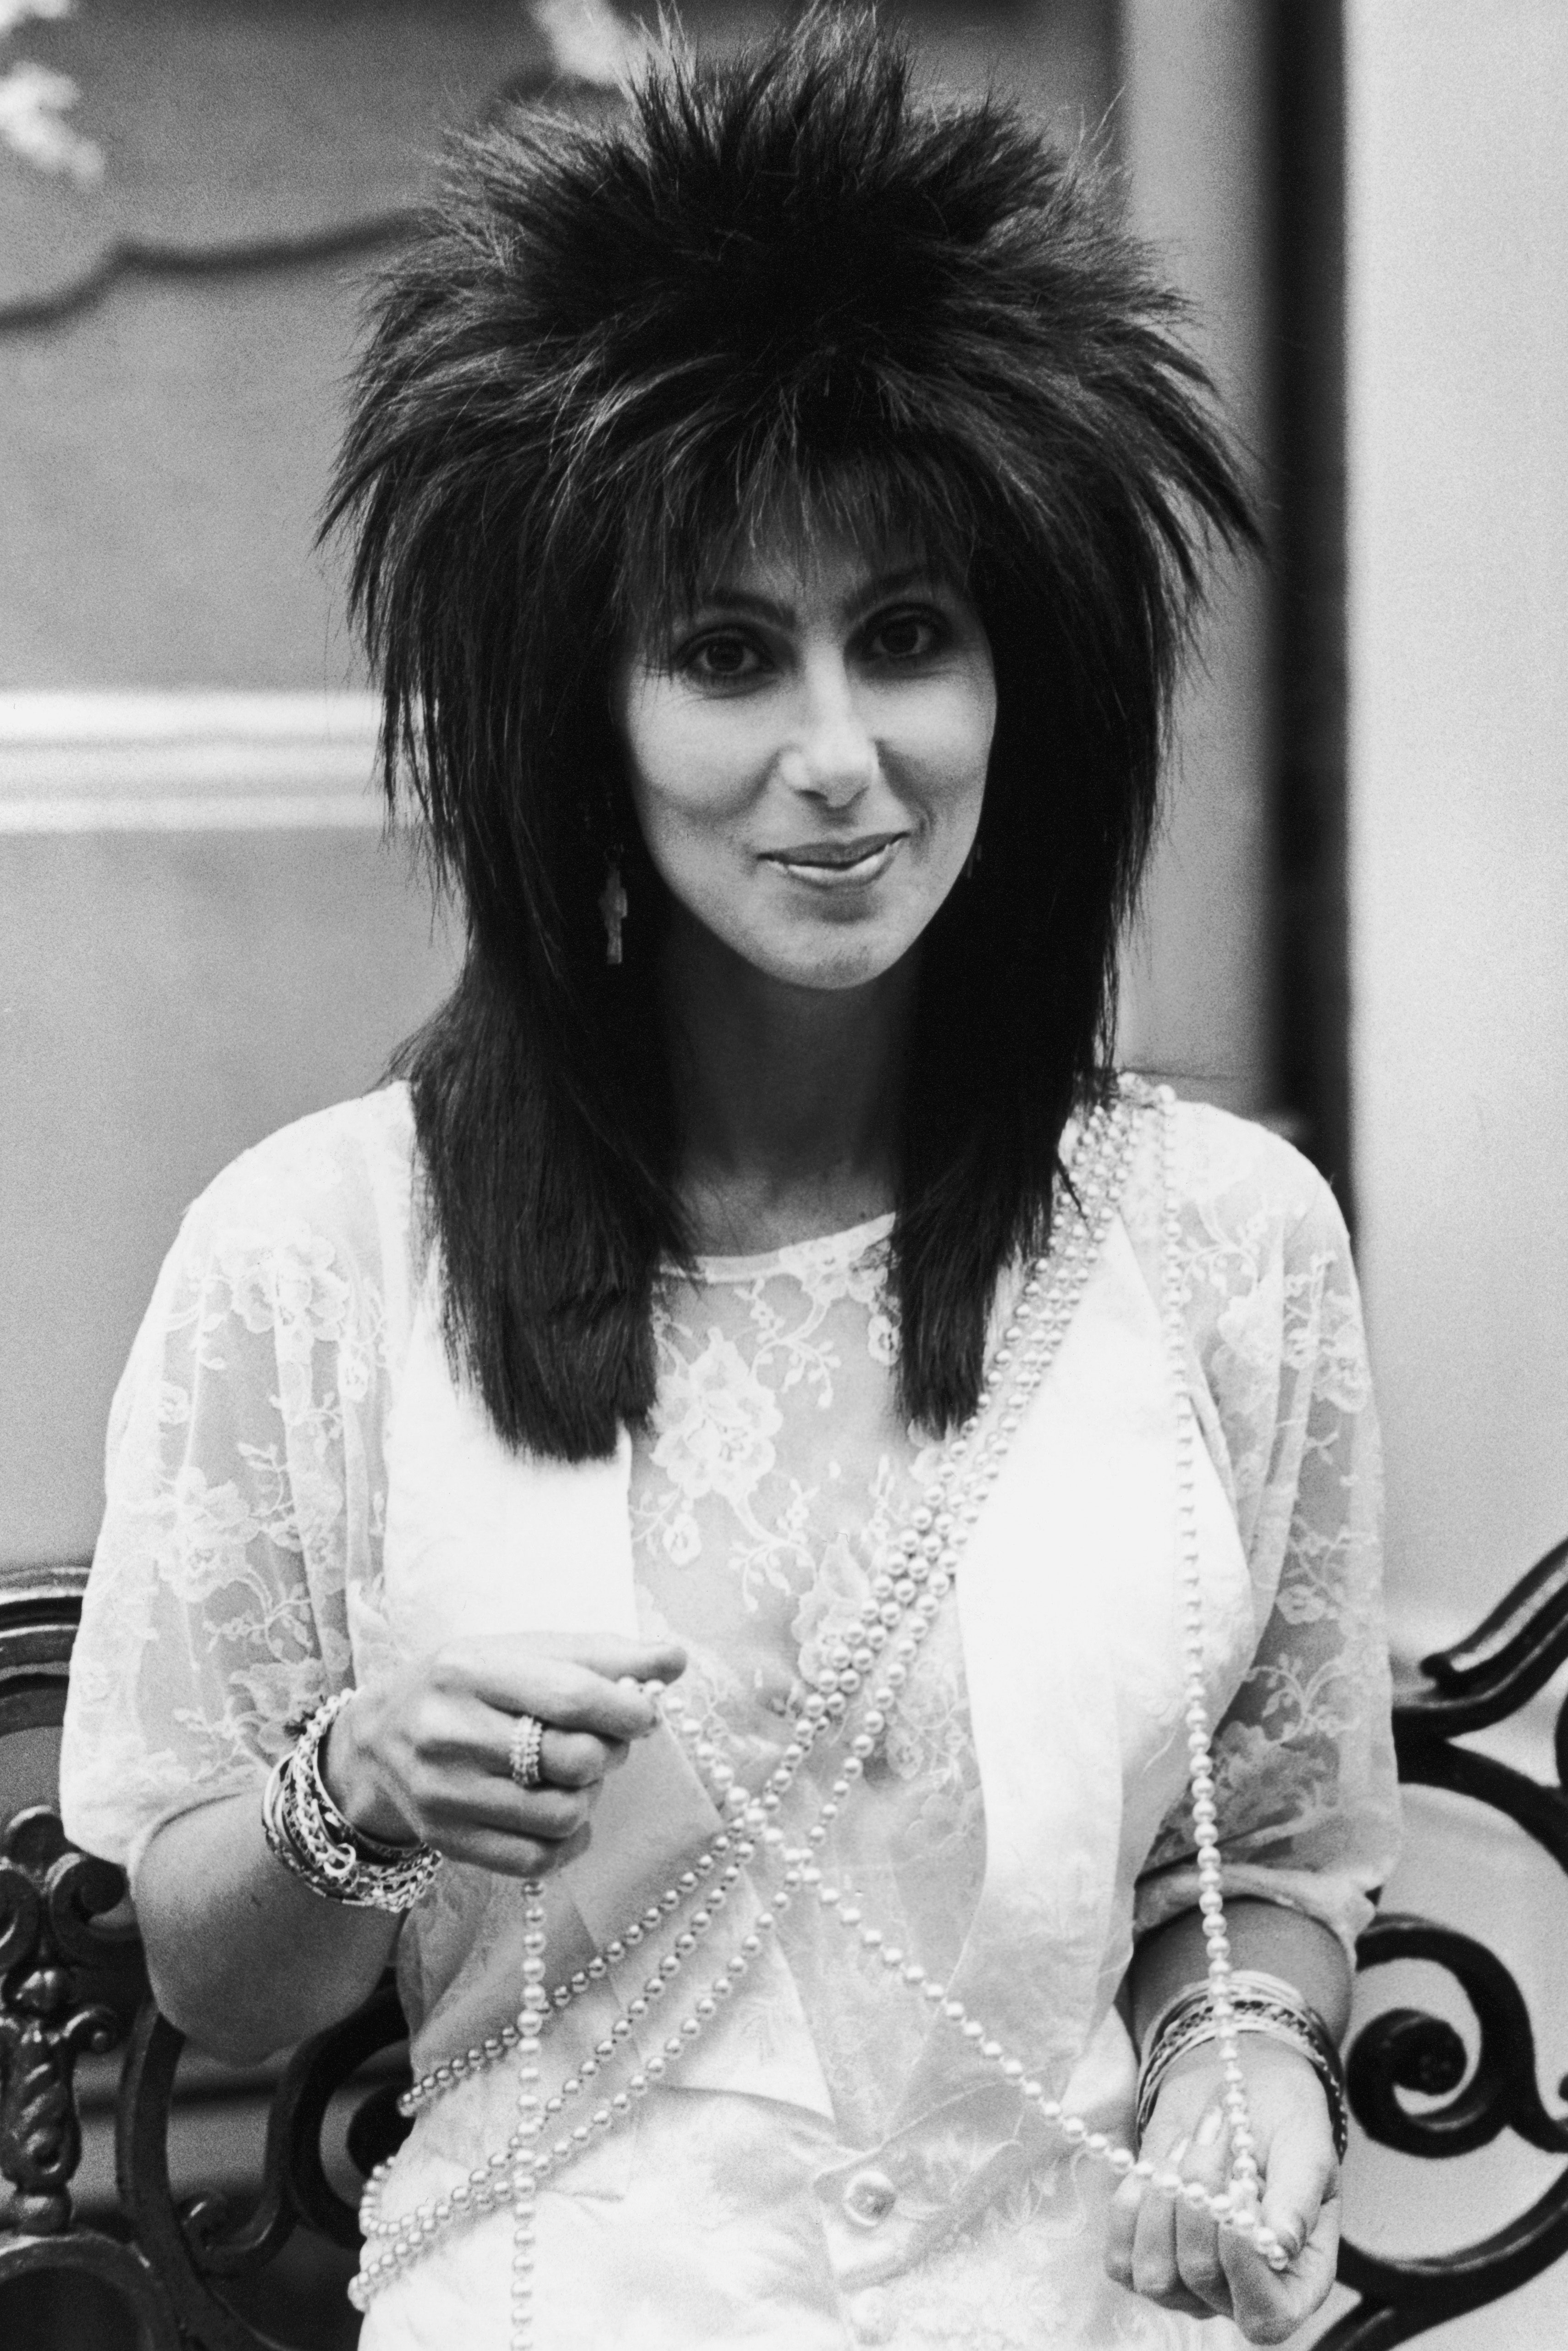 Cher promotes the film Mask in London on June 1, 1985.